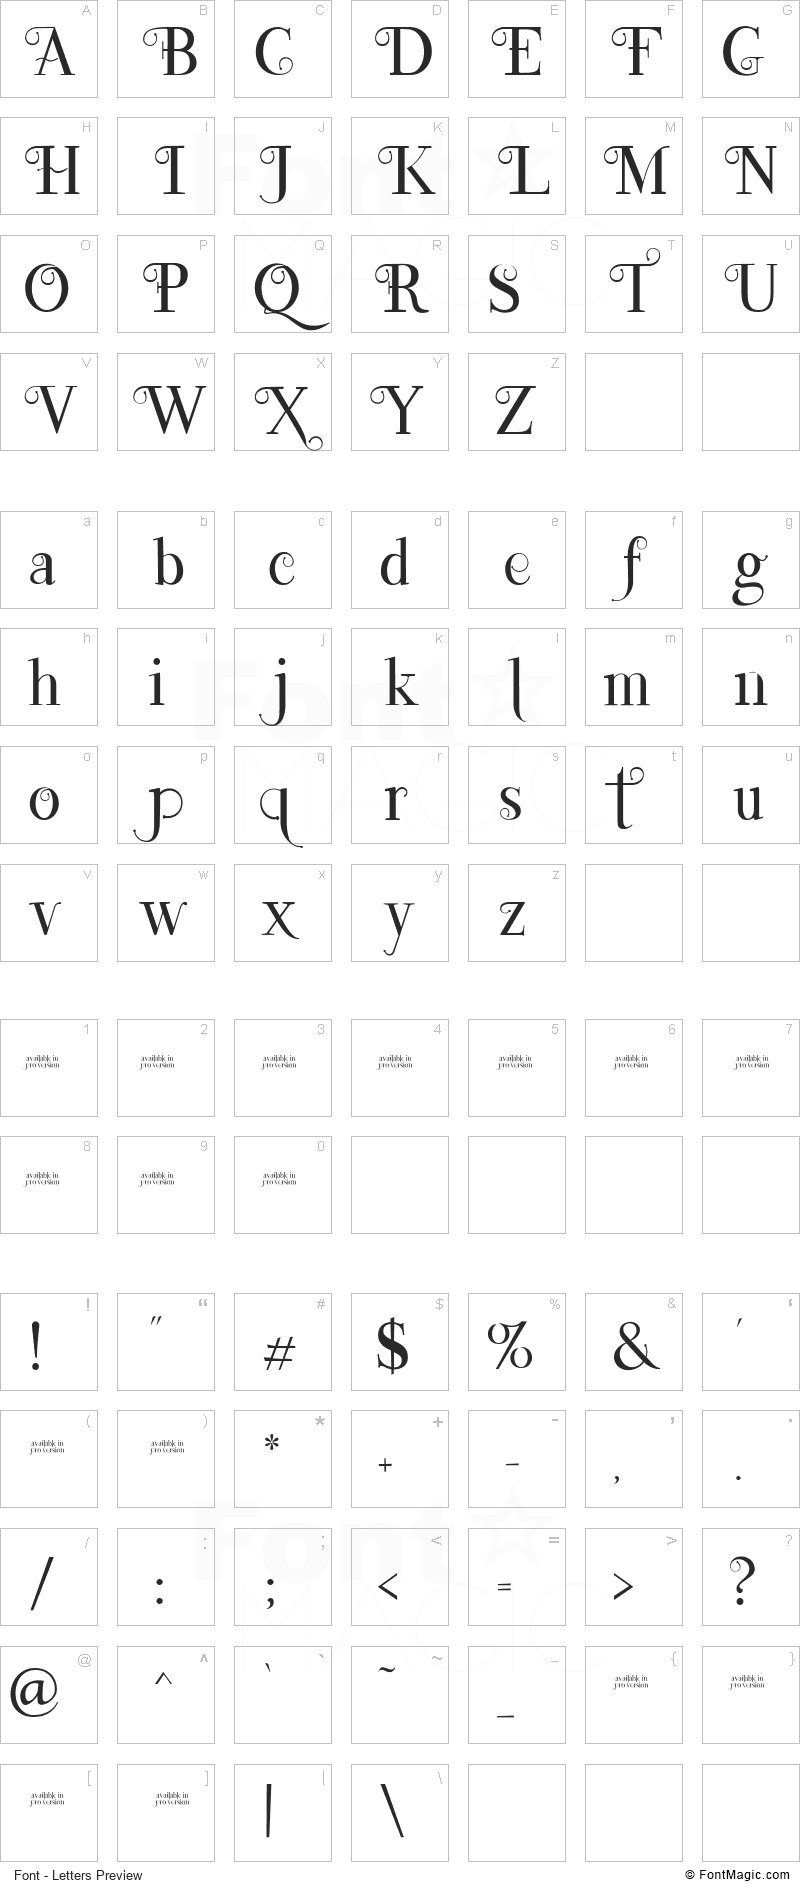 Lefina Font - All Latters Preview Chart